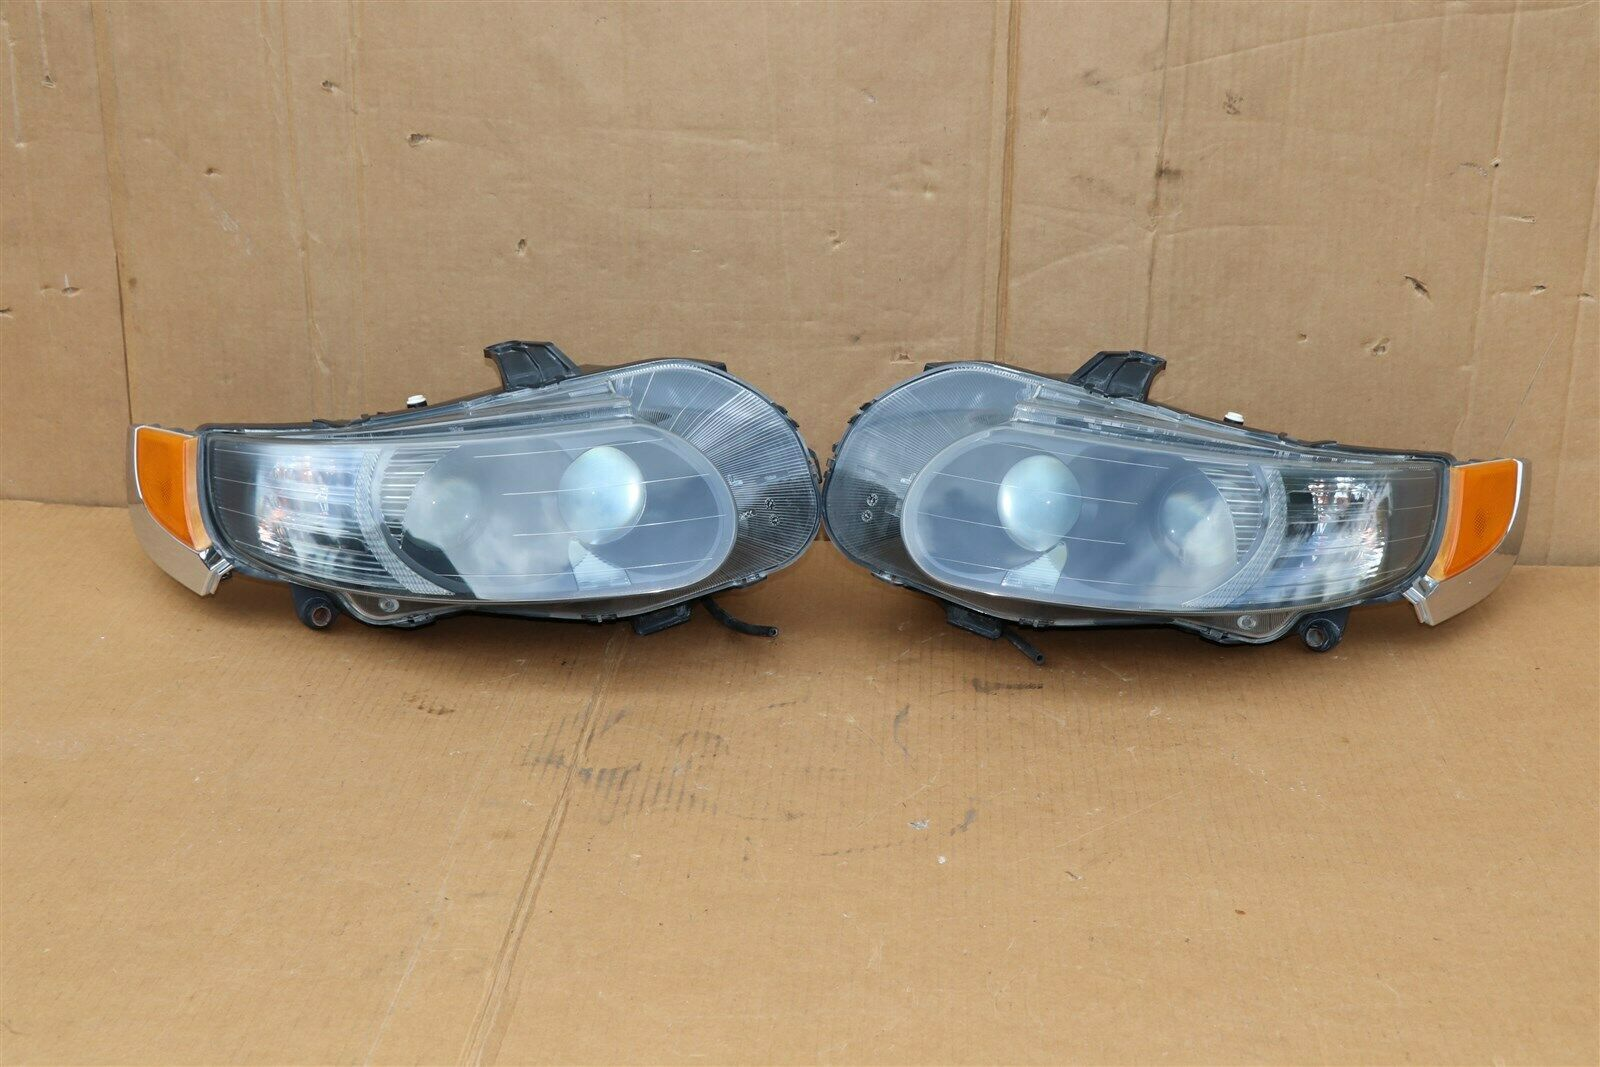 06-09 Saab 9-5 HId Xenon Headlight Head Light Lamps Set L&R - POLISHED